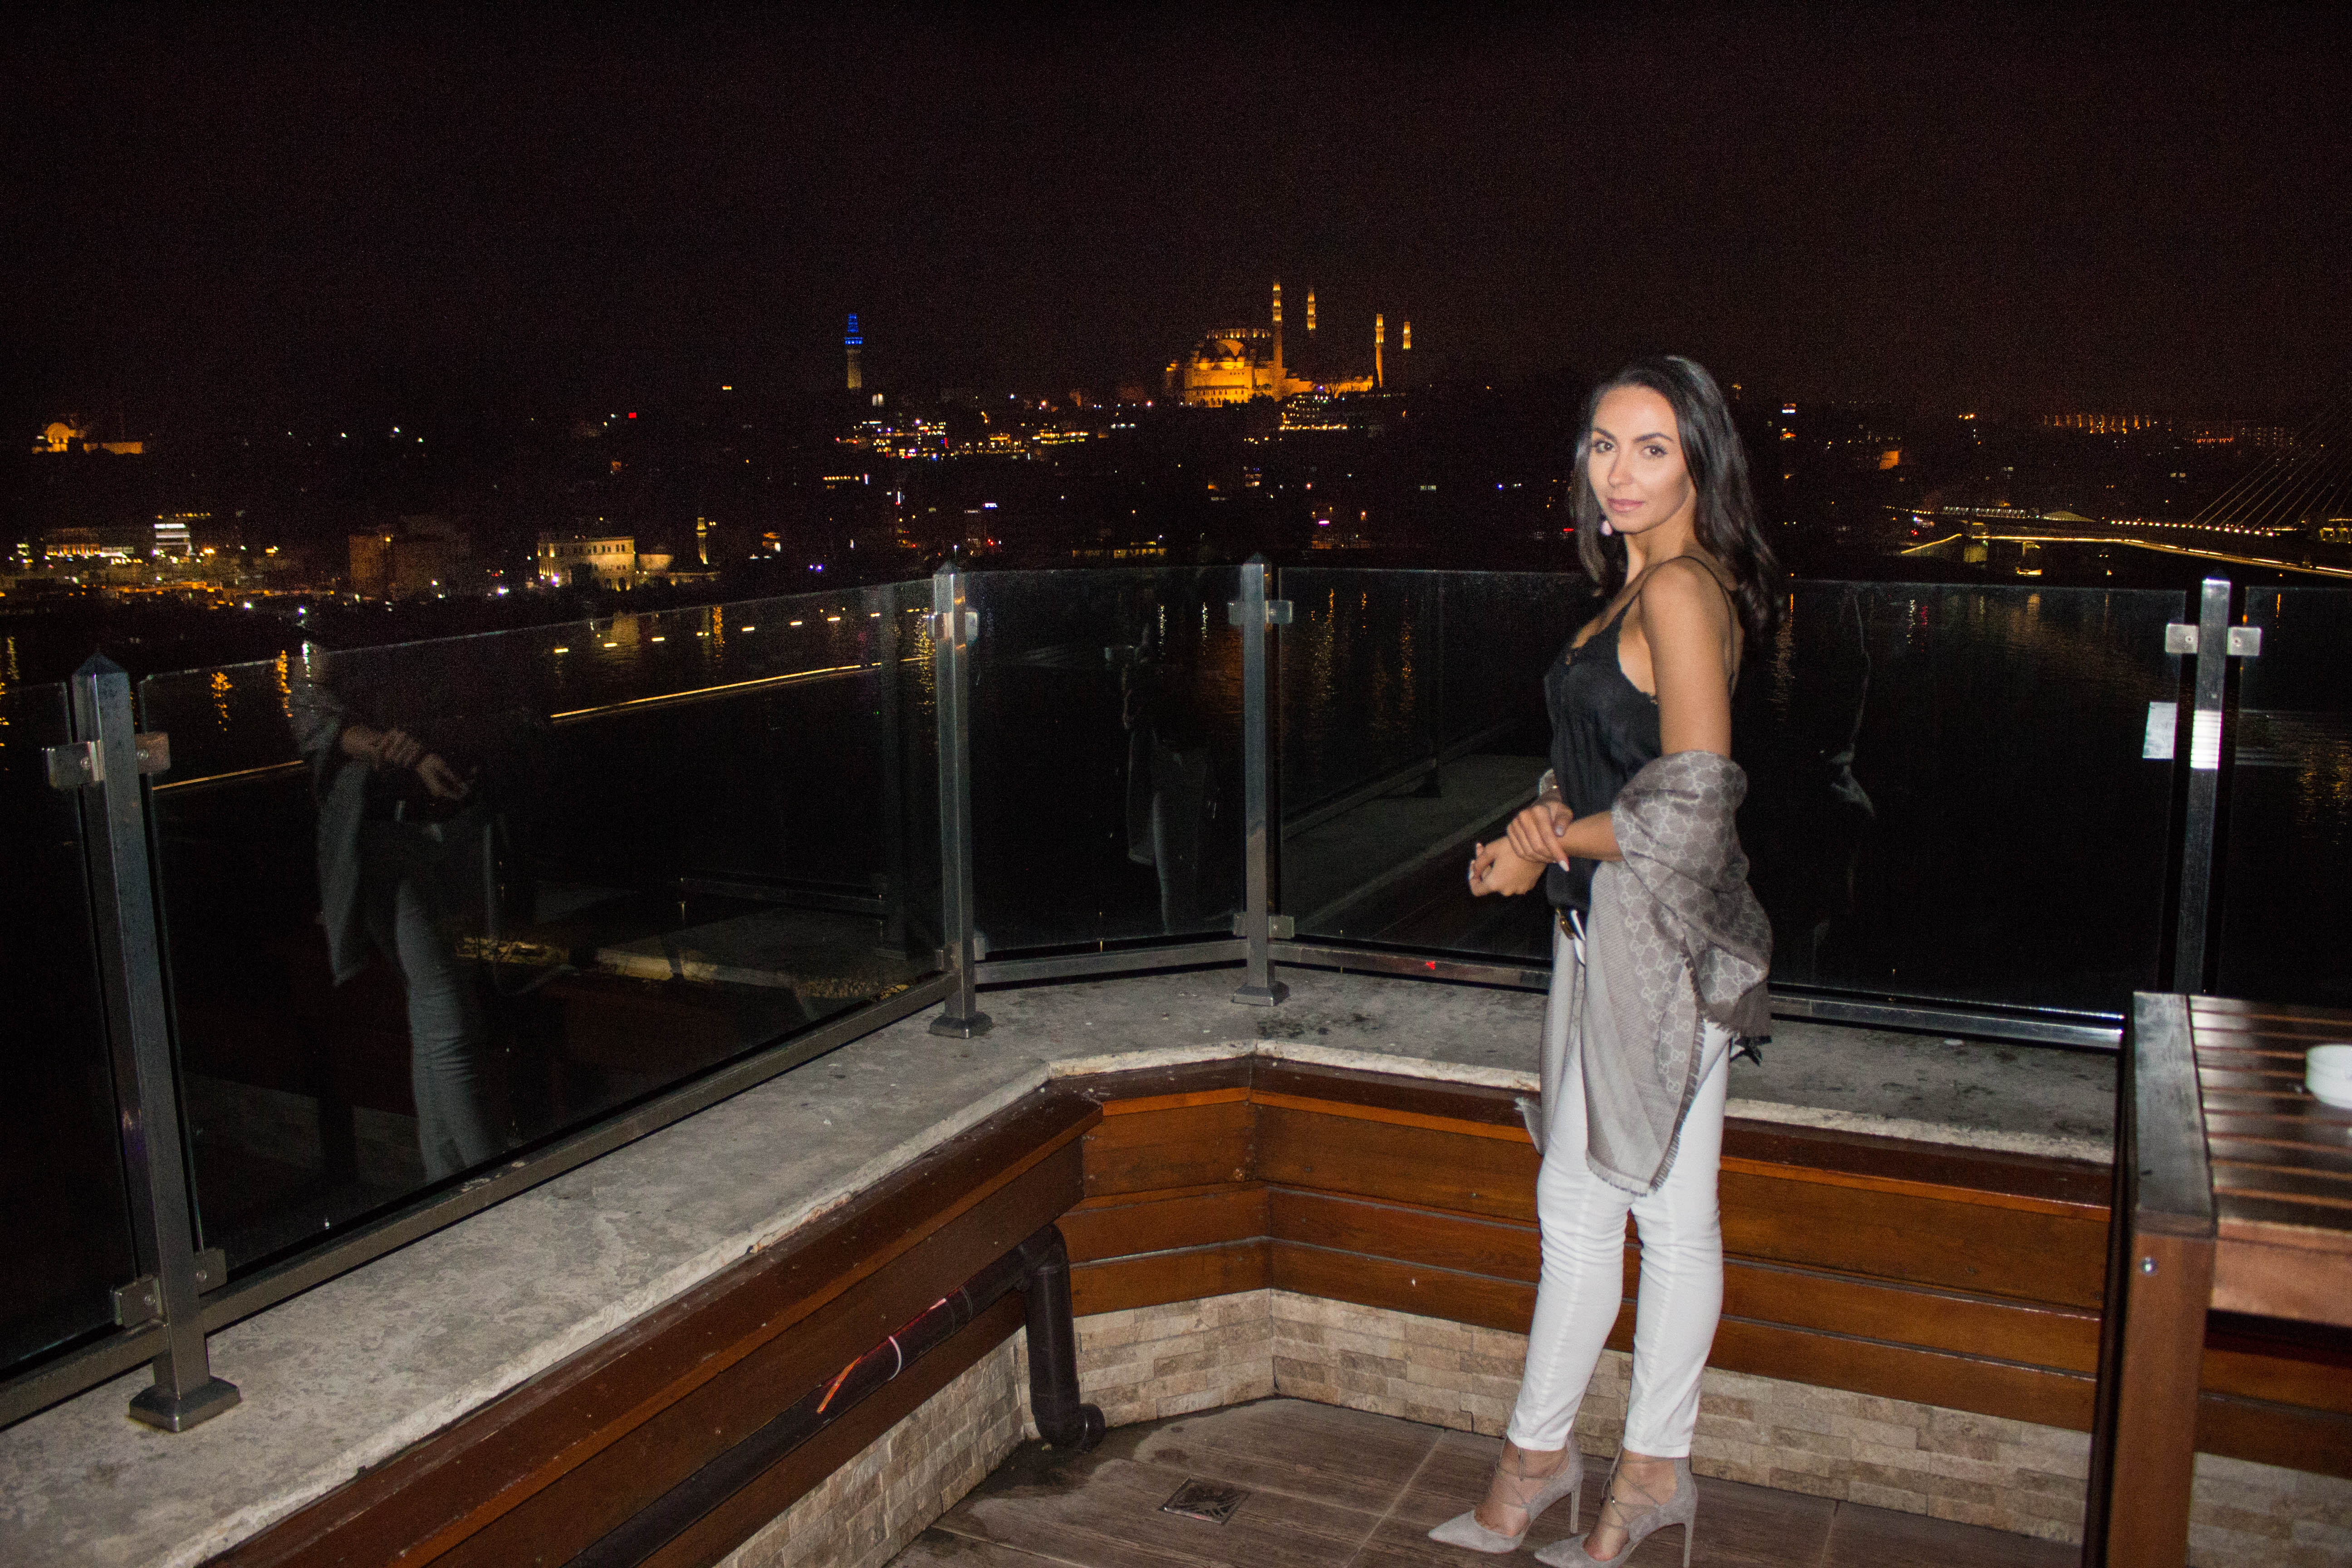 Istanbul in May: Indulgent romance